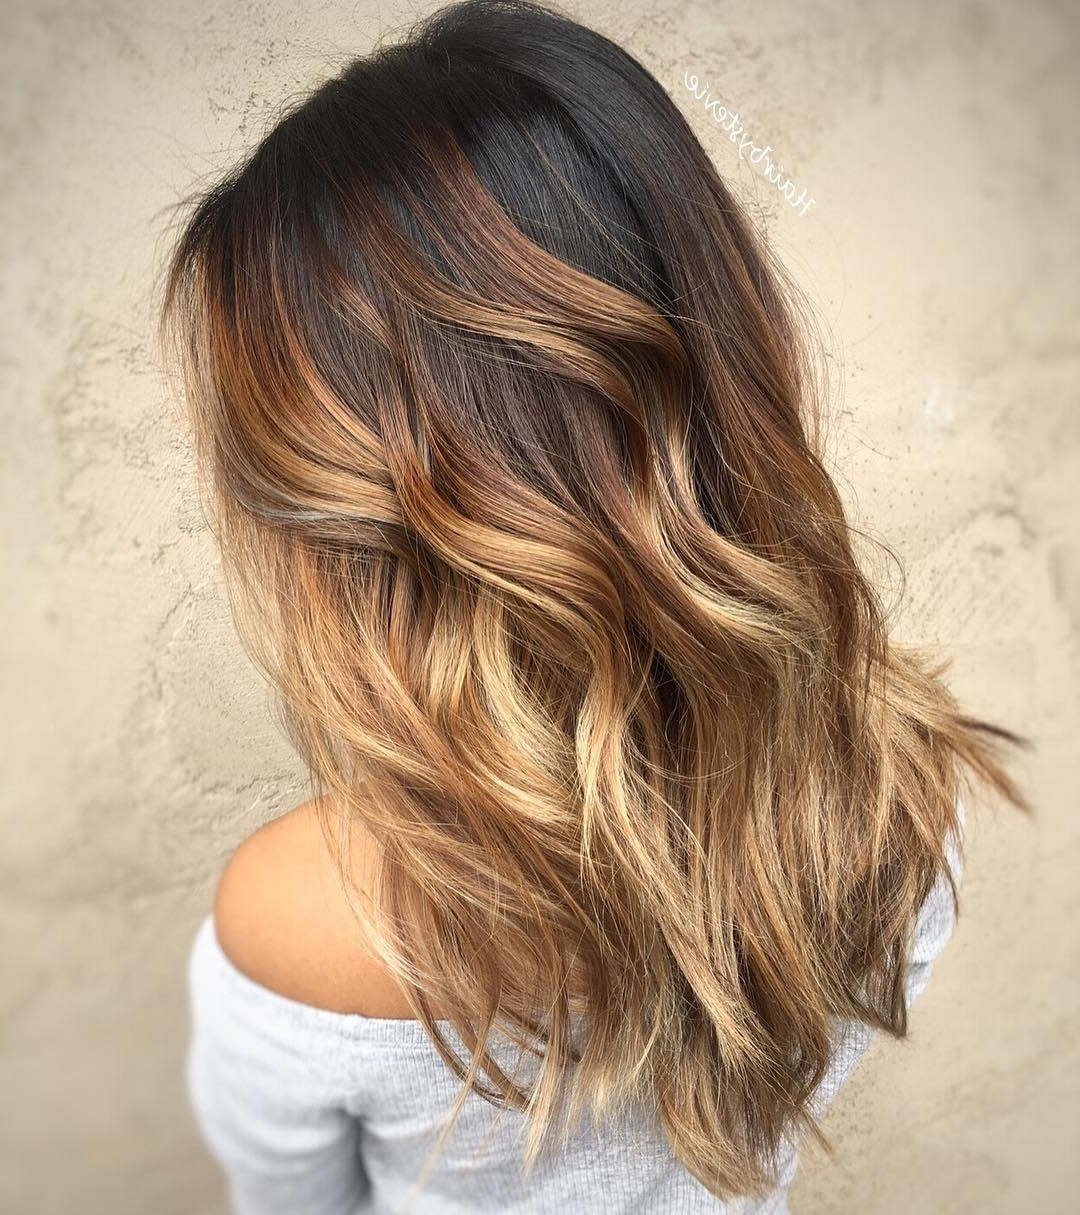 Latest Caramel Blonde Hairstyles Within 20 Sweet Caramel Balayage Hairstyles For Brunettes And Beyond (View 3 of 20)